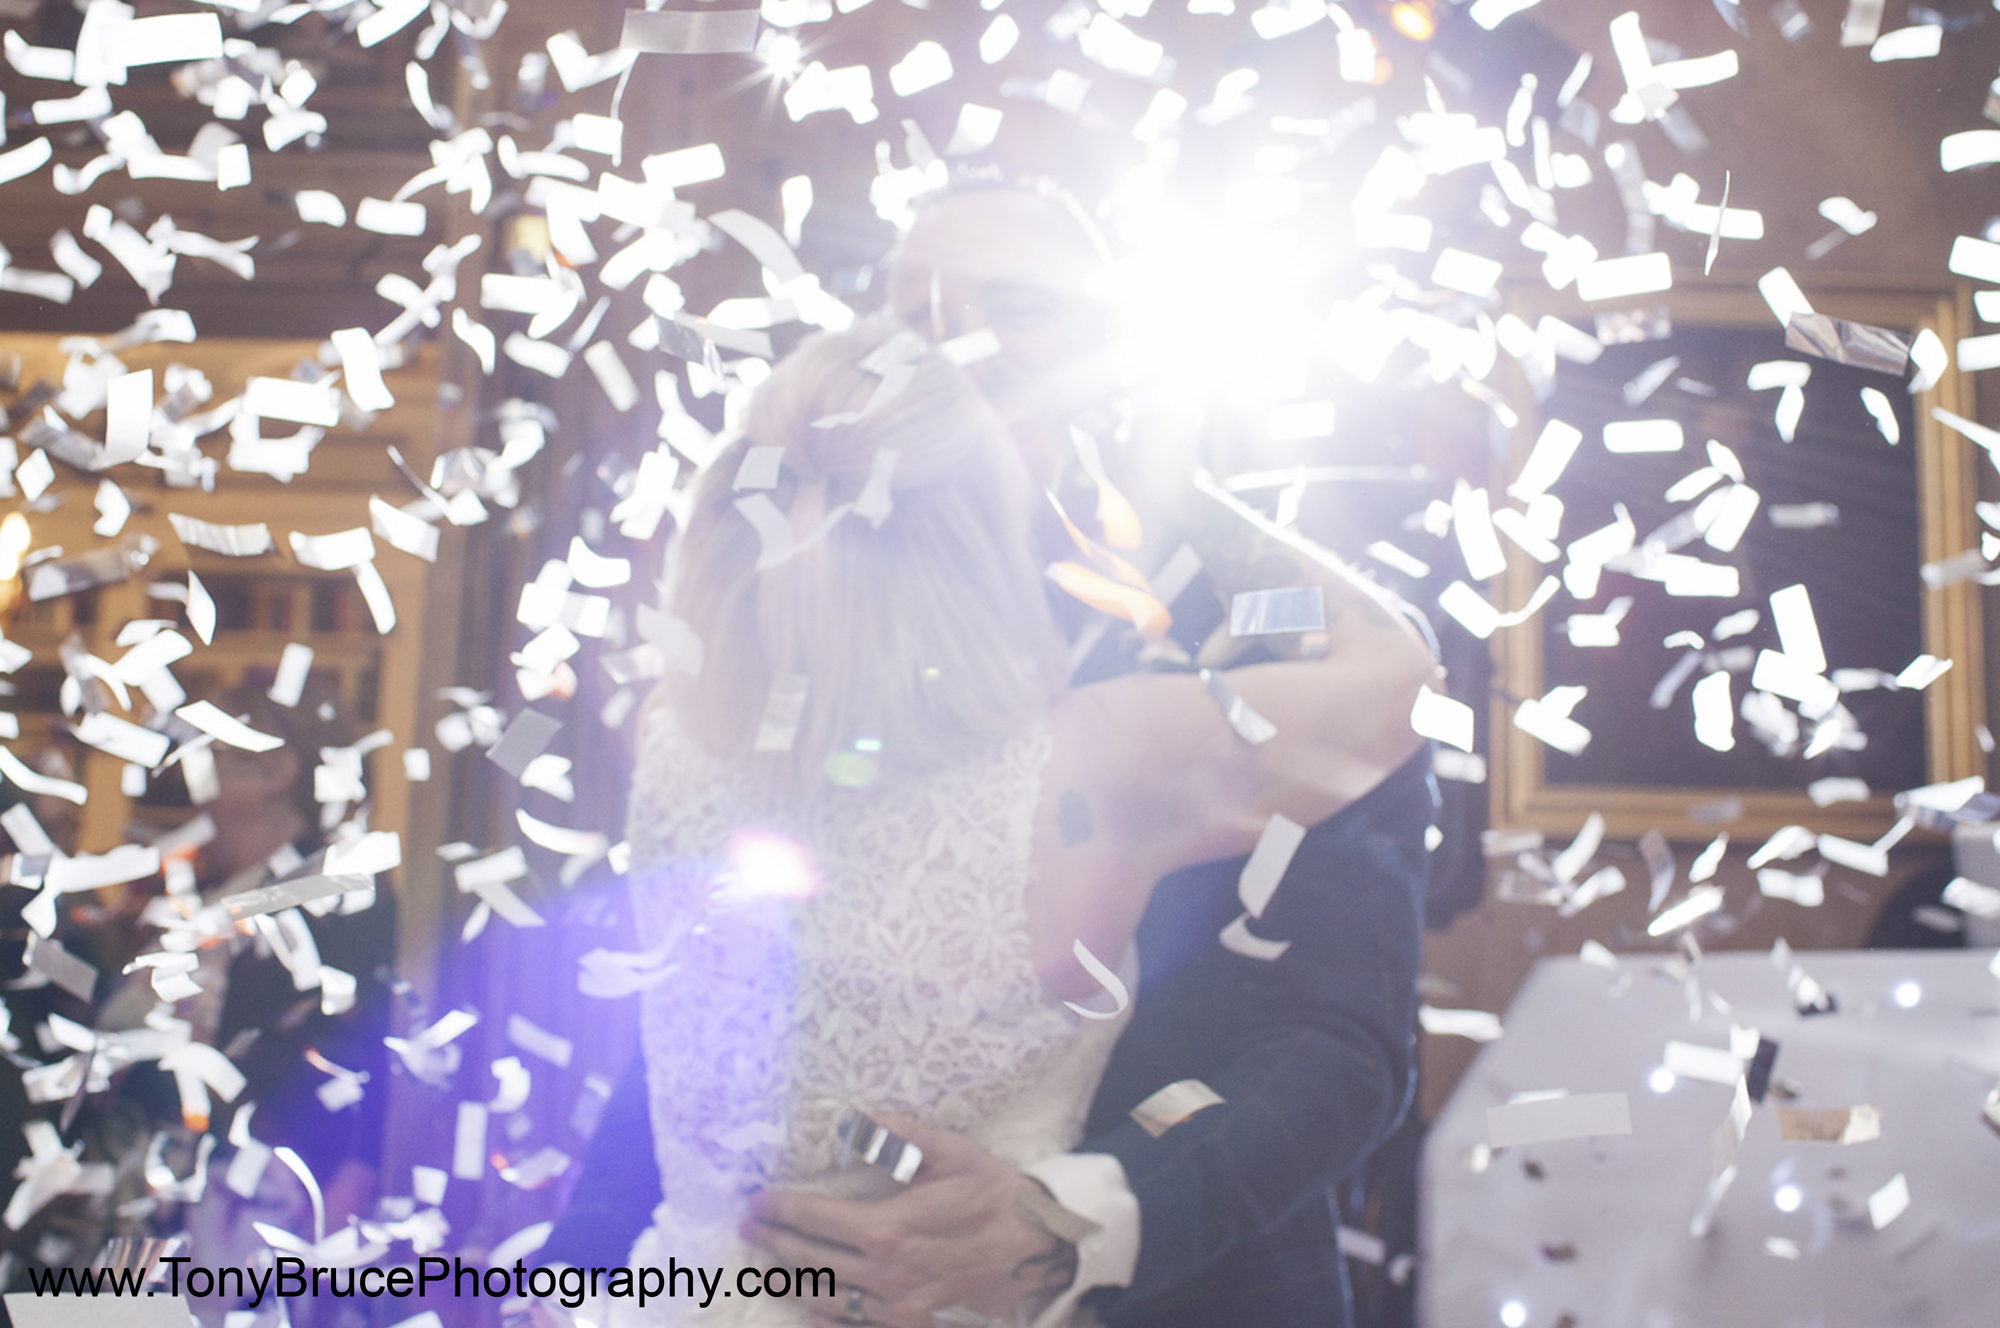 Cambridge Wedding Services - Confetti Dance